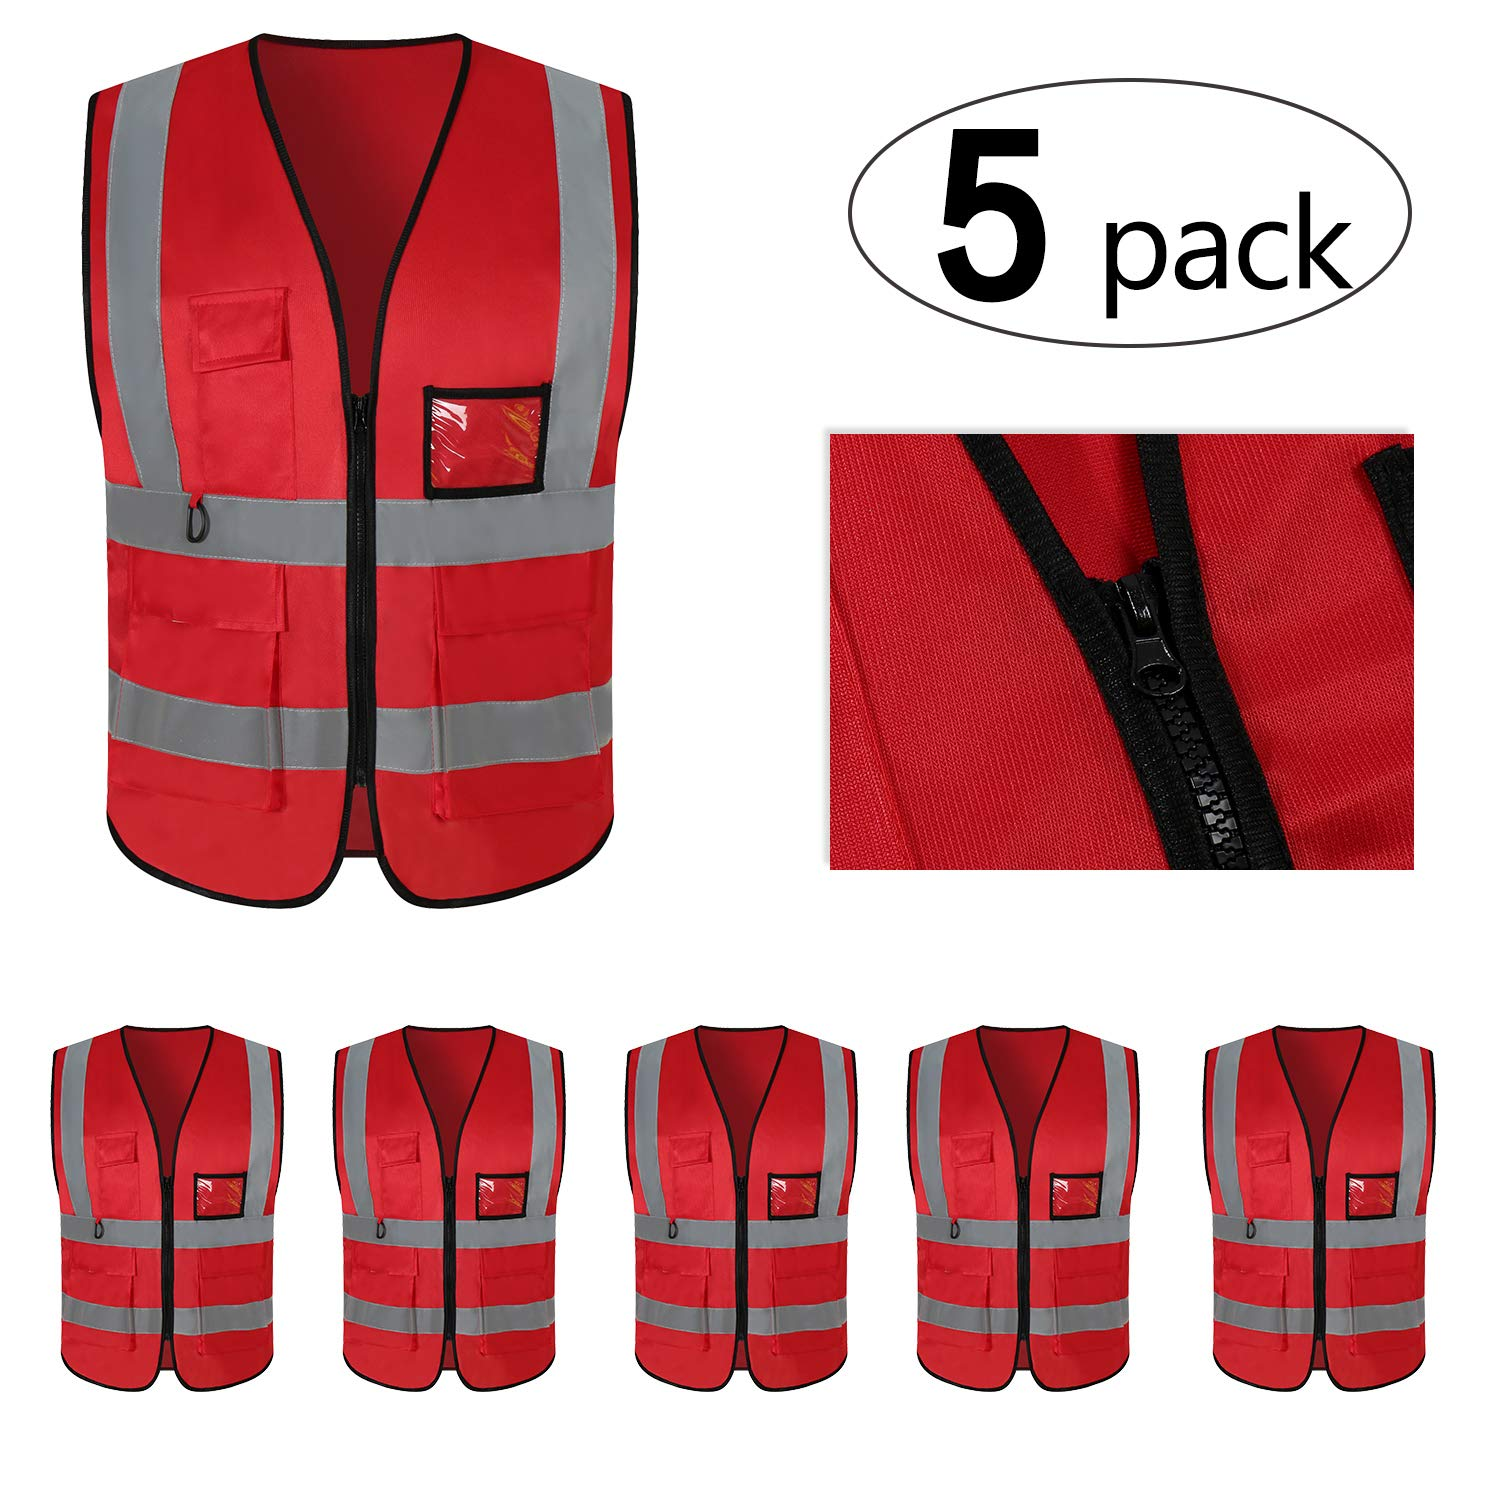 Mount Marter Reflective Safety Vest with 5 Pockets,Reflective Strips,Universal Size,5 Pack